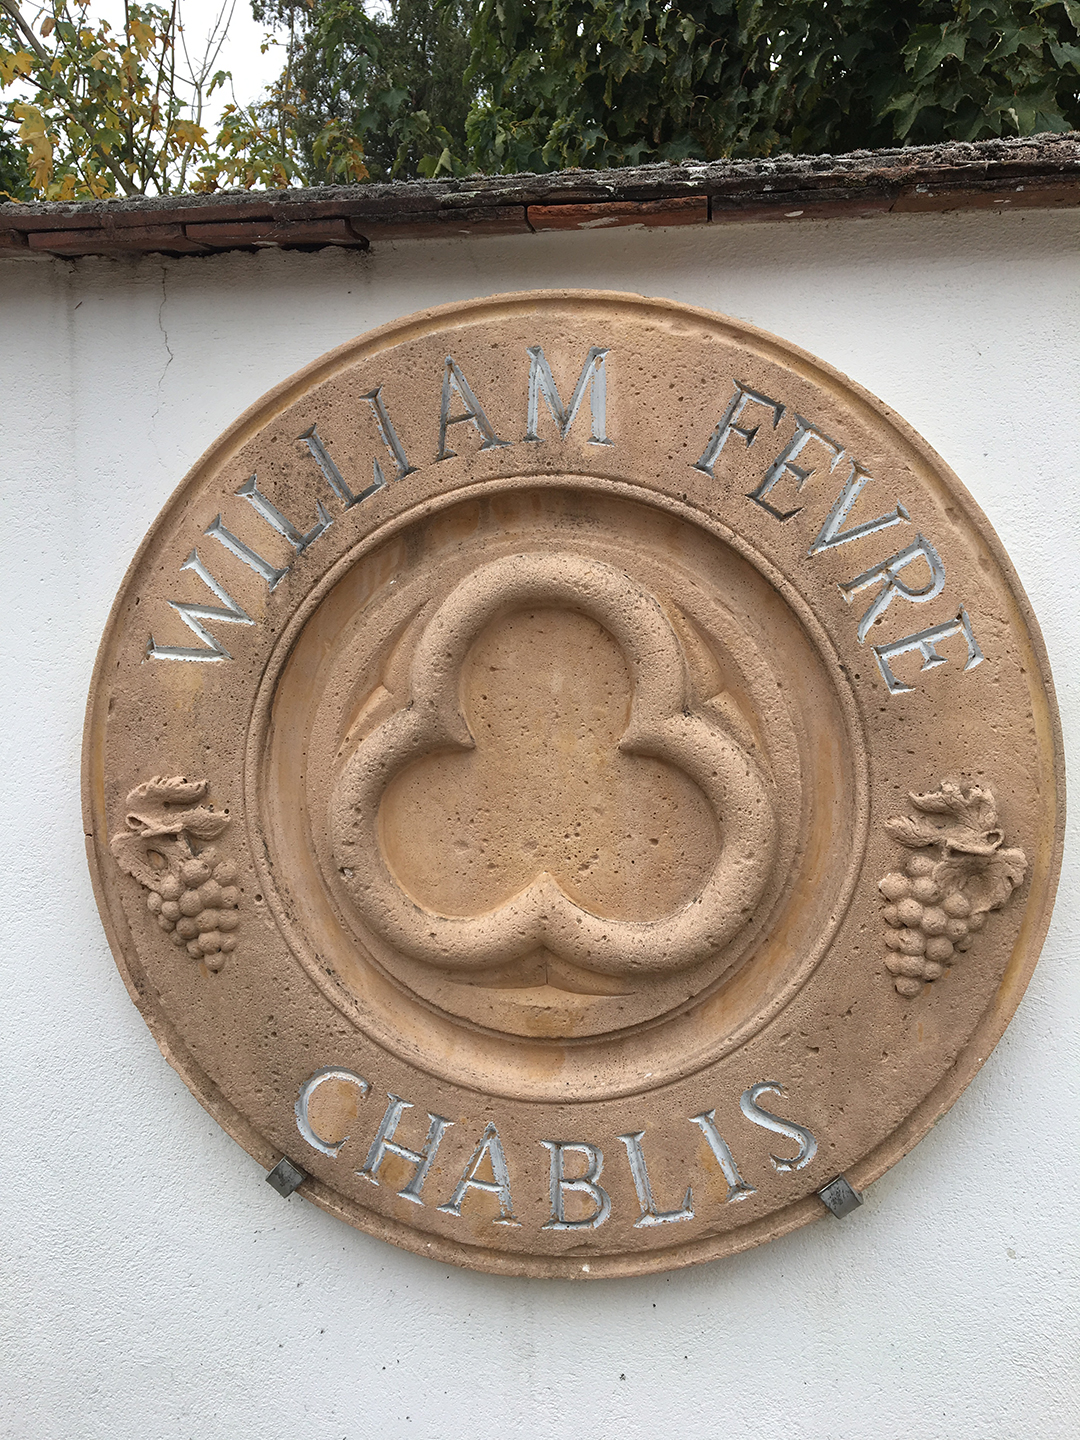 Circular William Fèvre relief plaque on wall